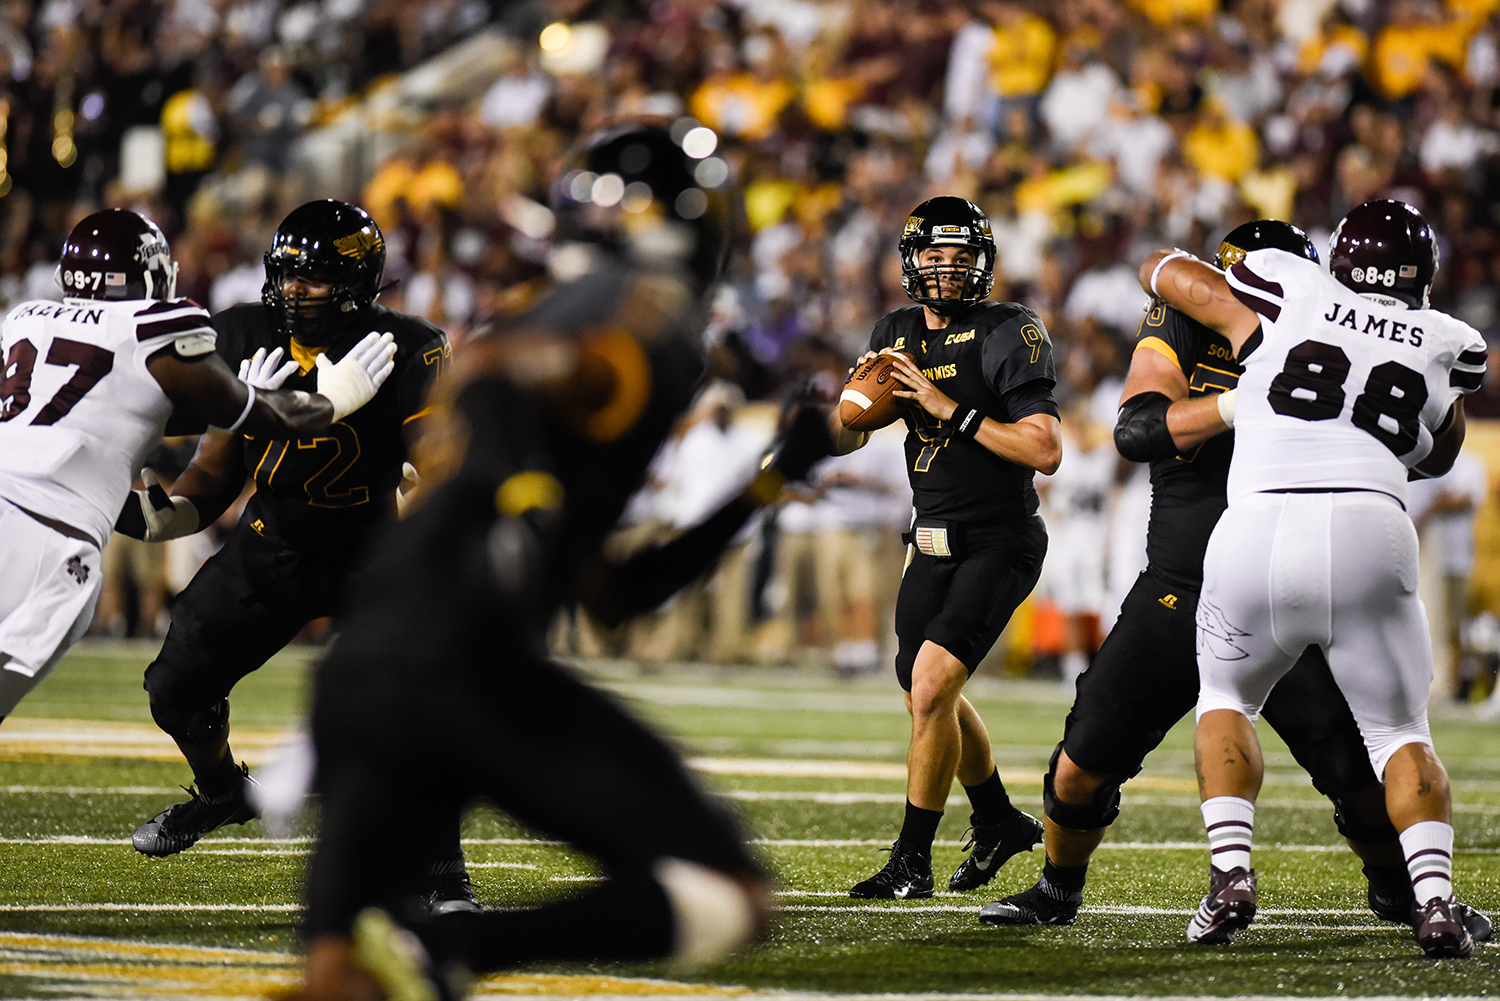 Download image 2015 Southern Miss Vs Mississippi State PC Android 1500x1001